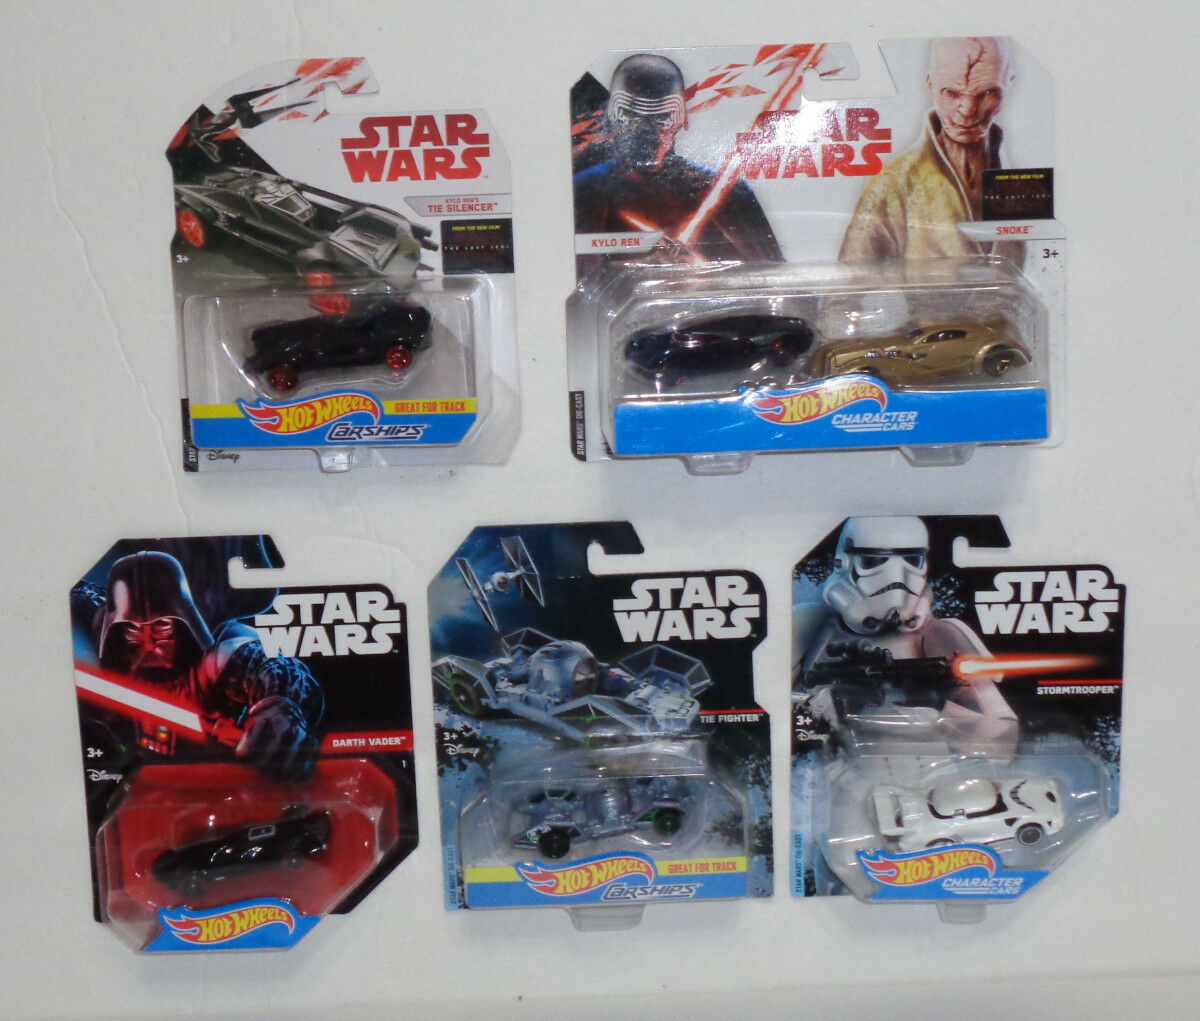 (6) Estrella Wars Hot Wheels Cocheácter coches y Cocheships (Darth Vader, Kylo Ren, + más)